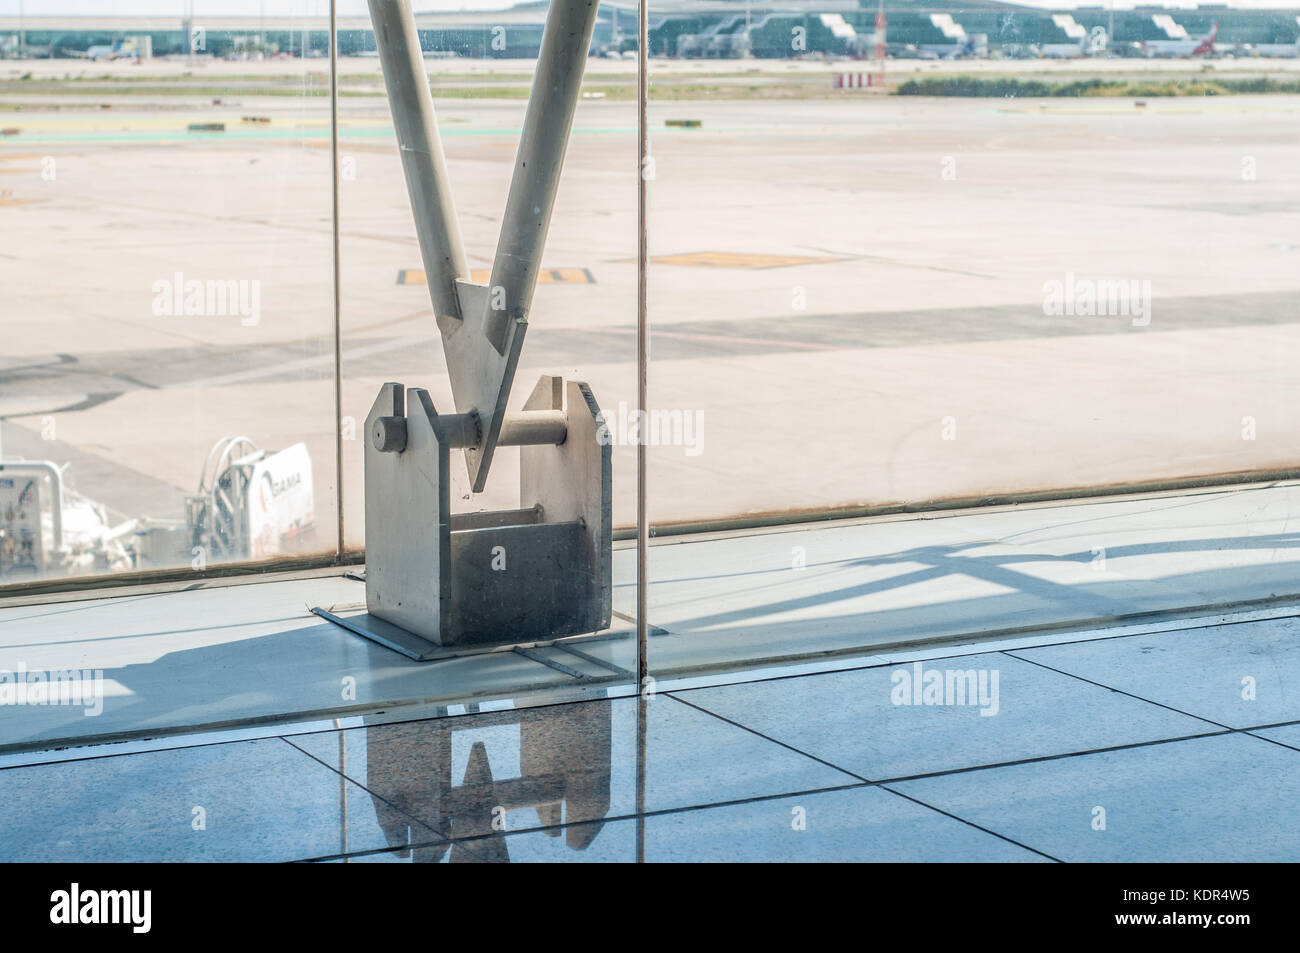 close-up view of the anchor structure, Barcelona Airport, terminal 2, Barcelona - Stock Image